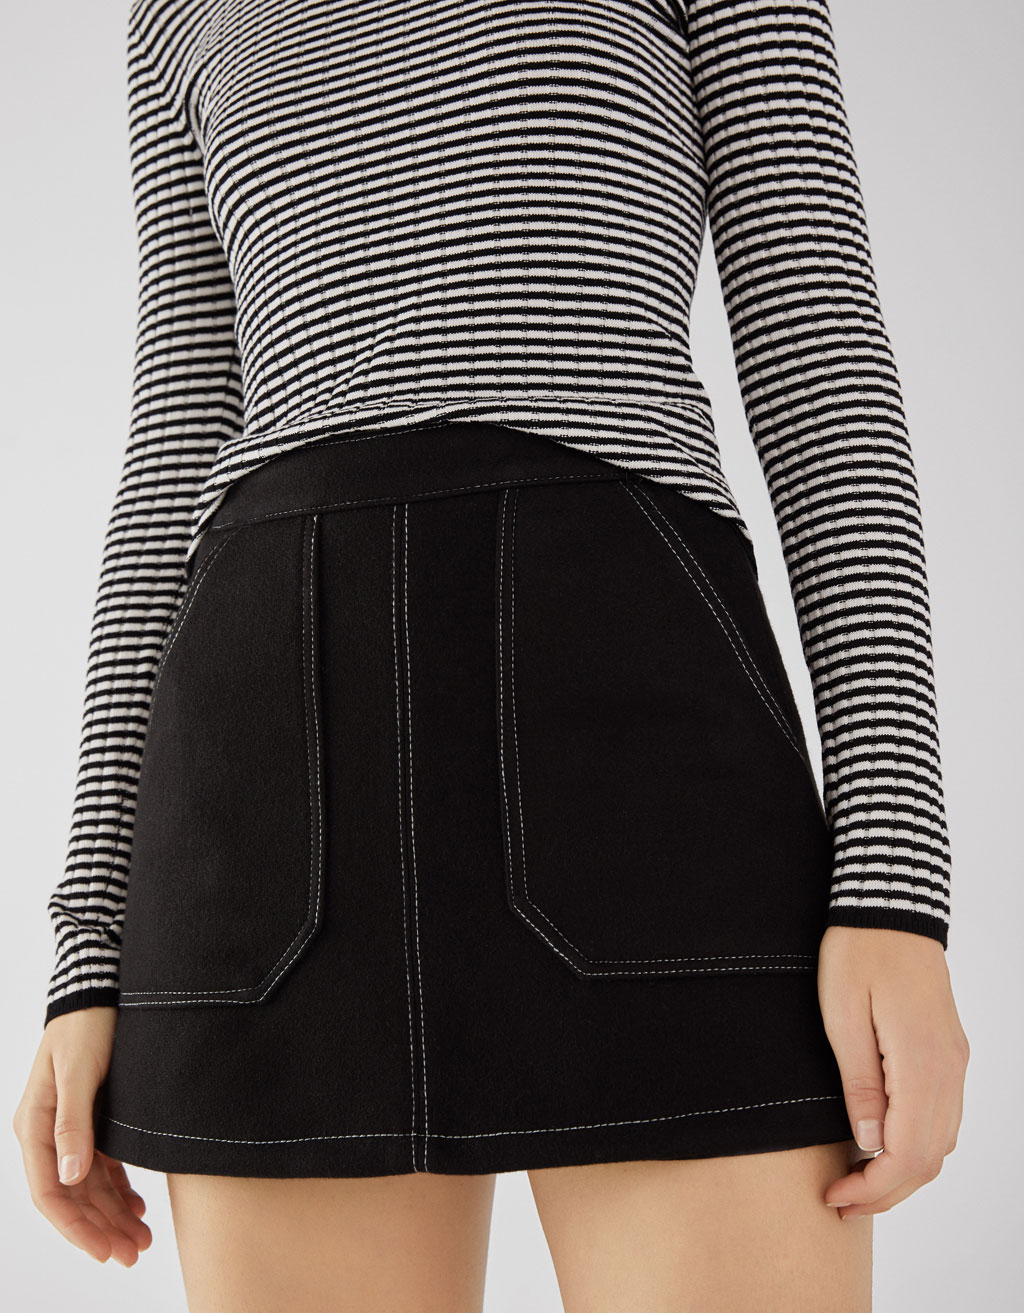 Cloth mini skirt